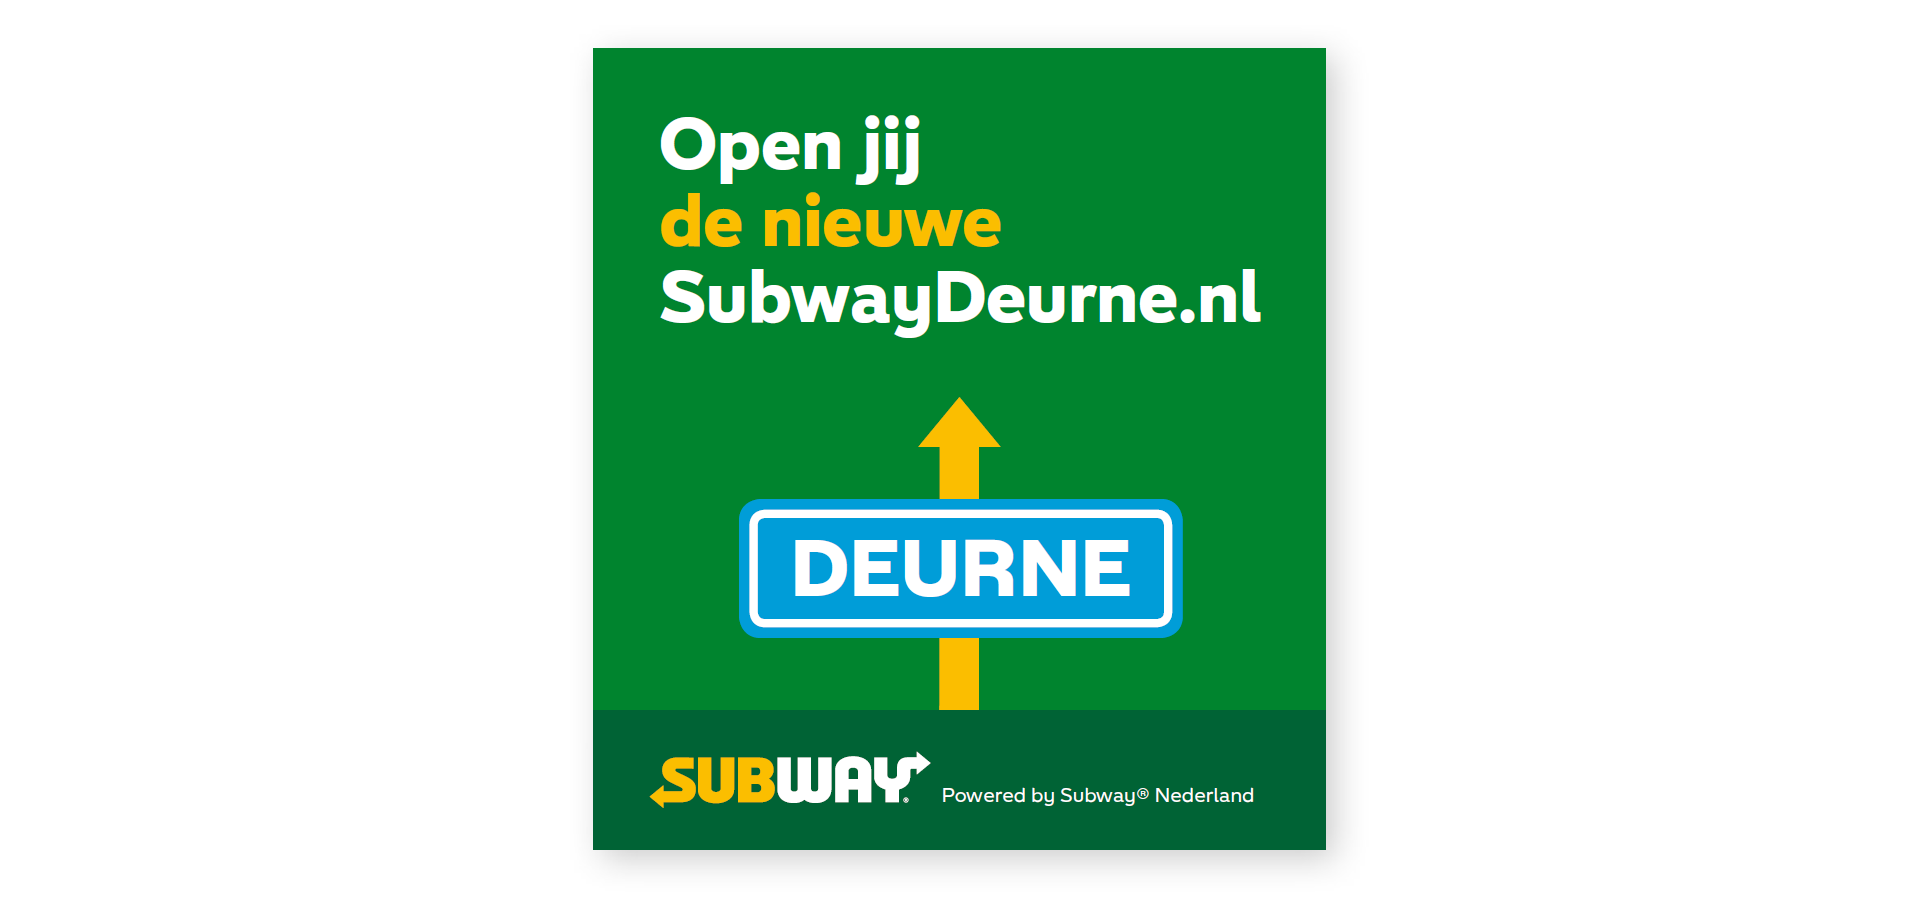 Subway-online-advertentie-facebook-Spiegel-crossmedia-communicatie